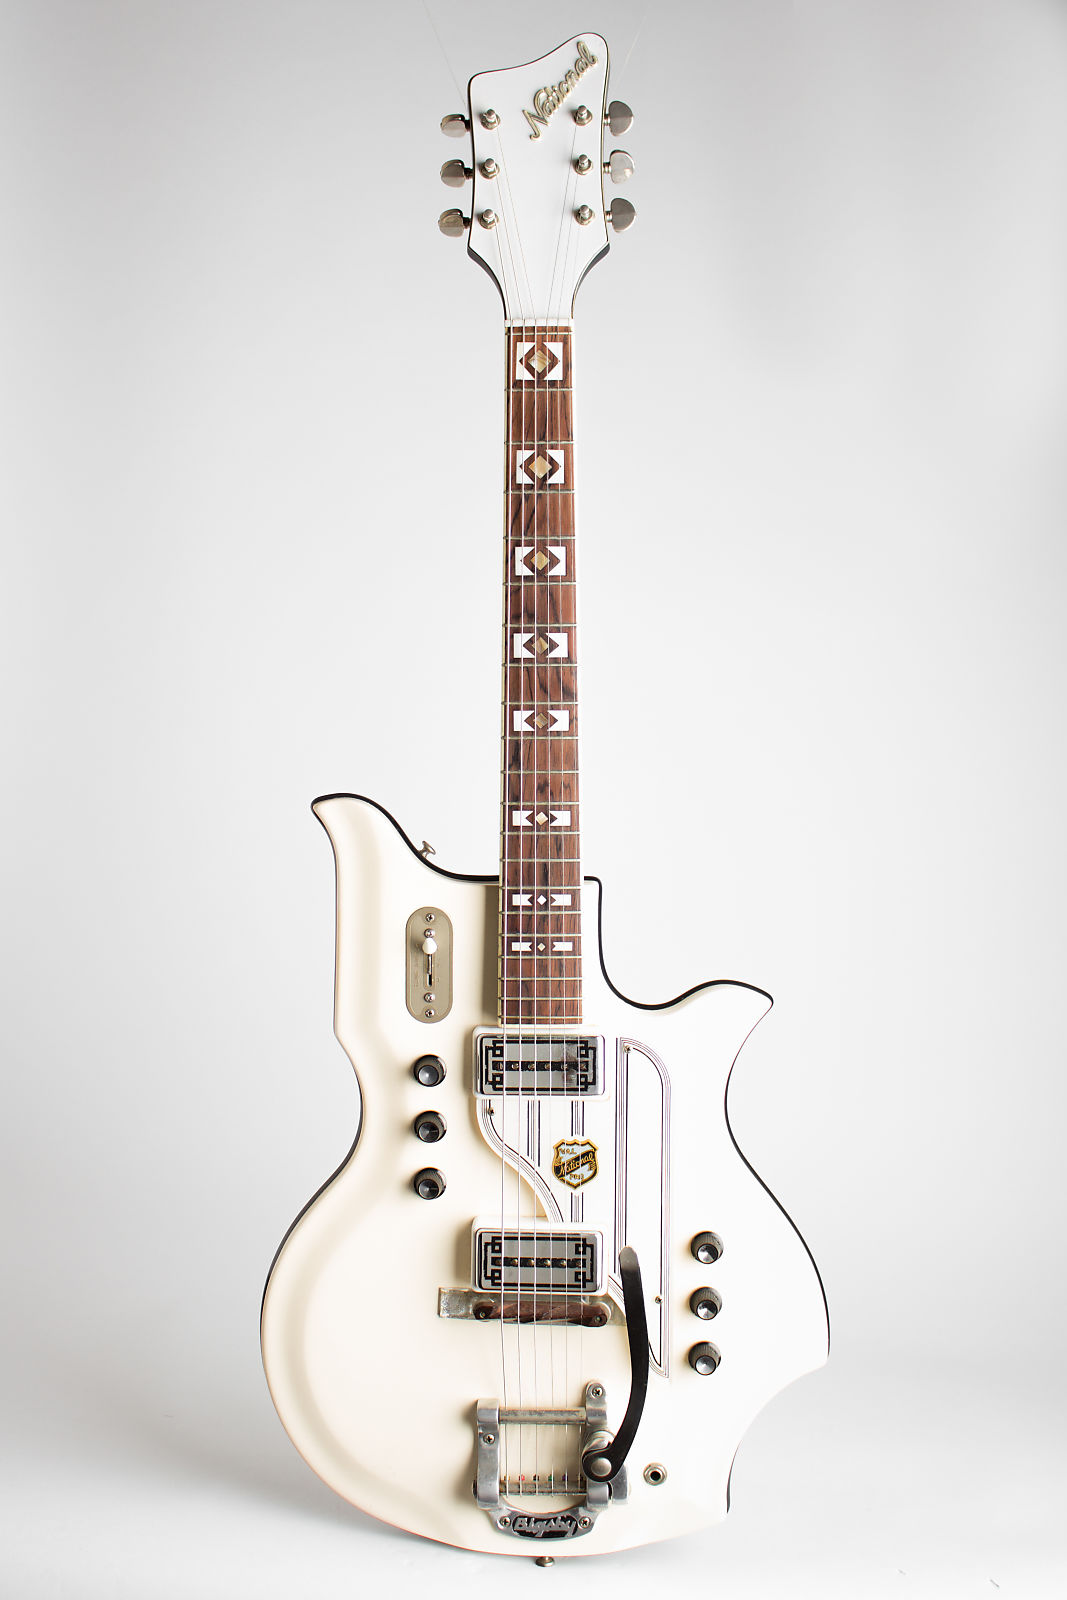 National  Glenwood 98 Solid Body Electric Guitar (1964), ser. #G-37688, original black hard shell case.